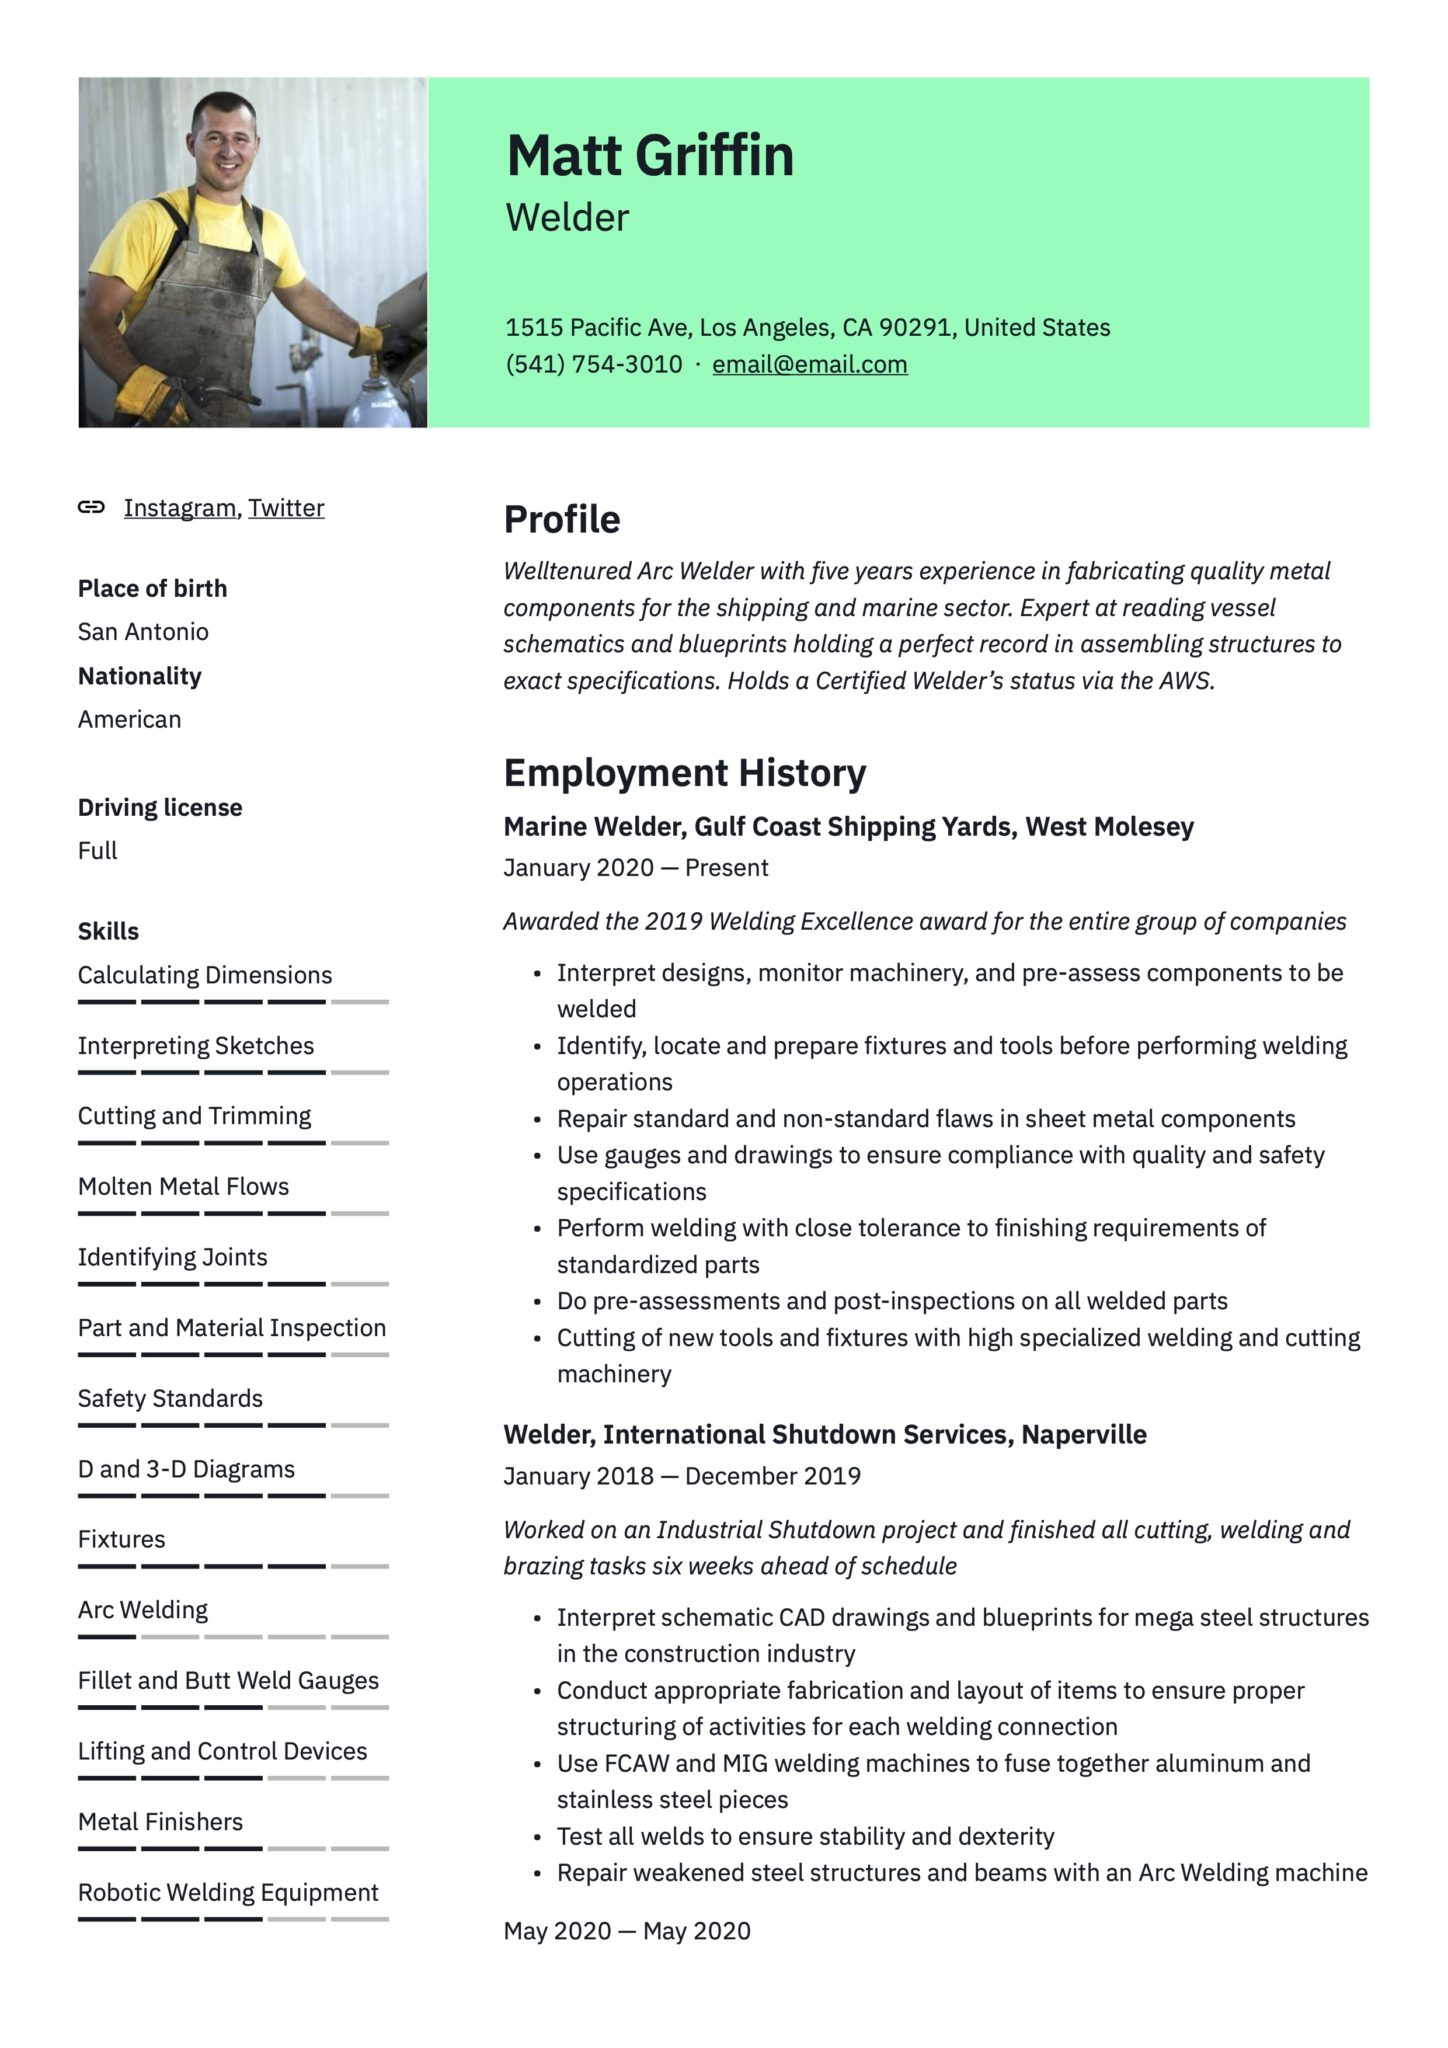 free welder resume examples guide pdf certified example scaled skills for data analyst Resume Certified Welder Resume Example